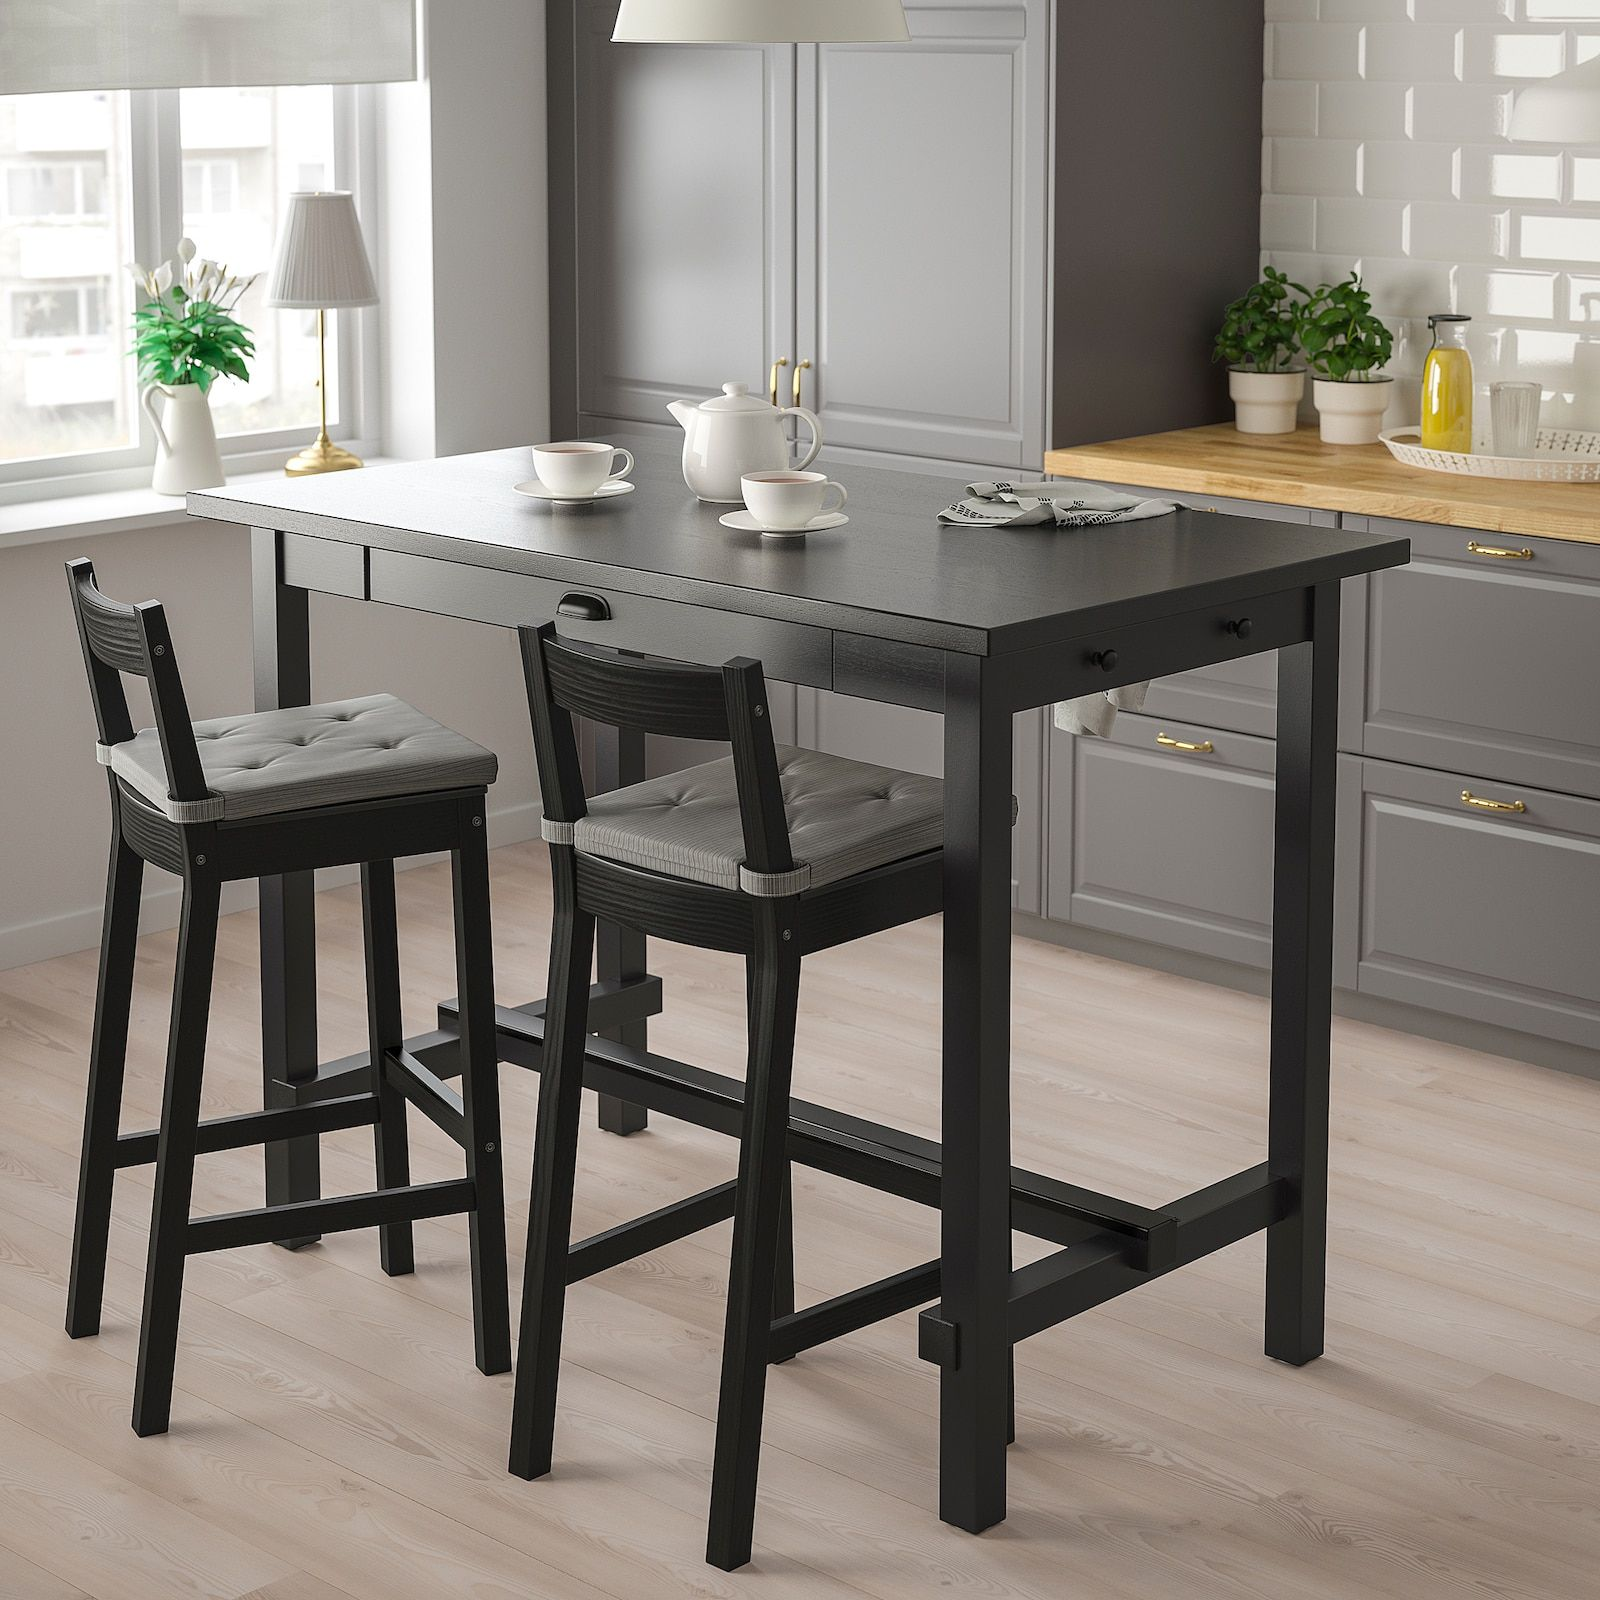 High Top Kitchen Table For 2